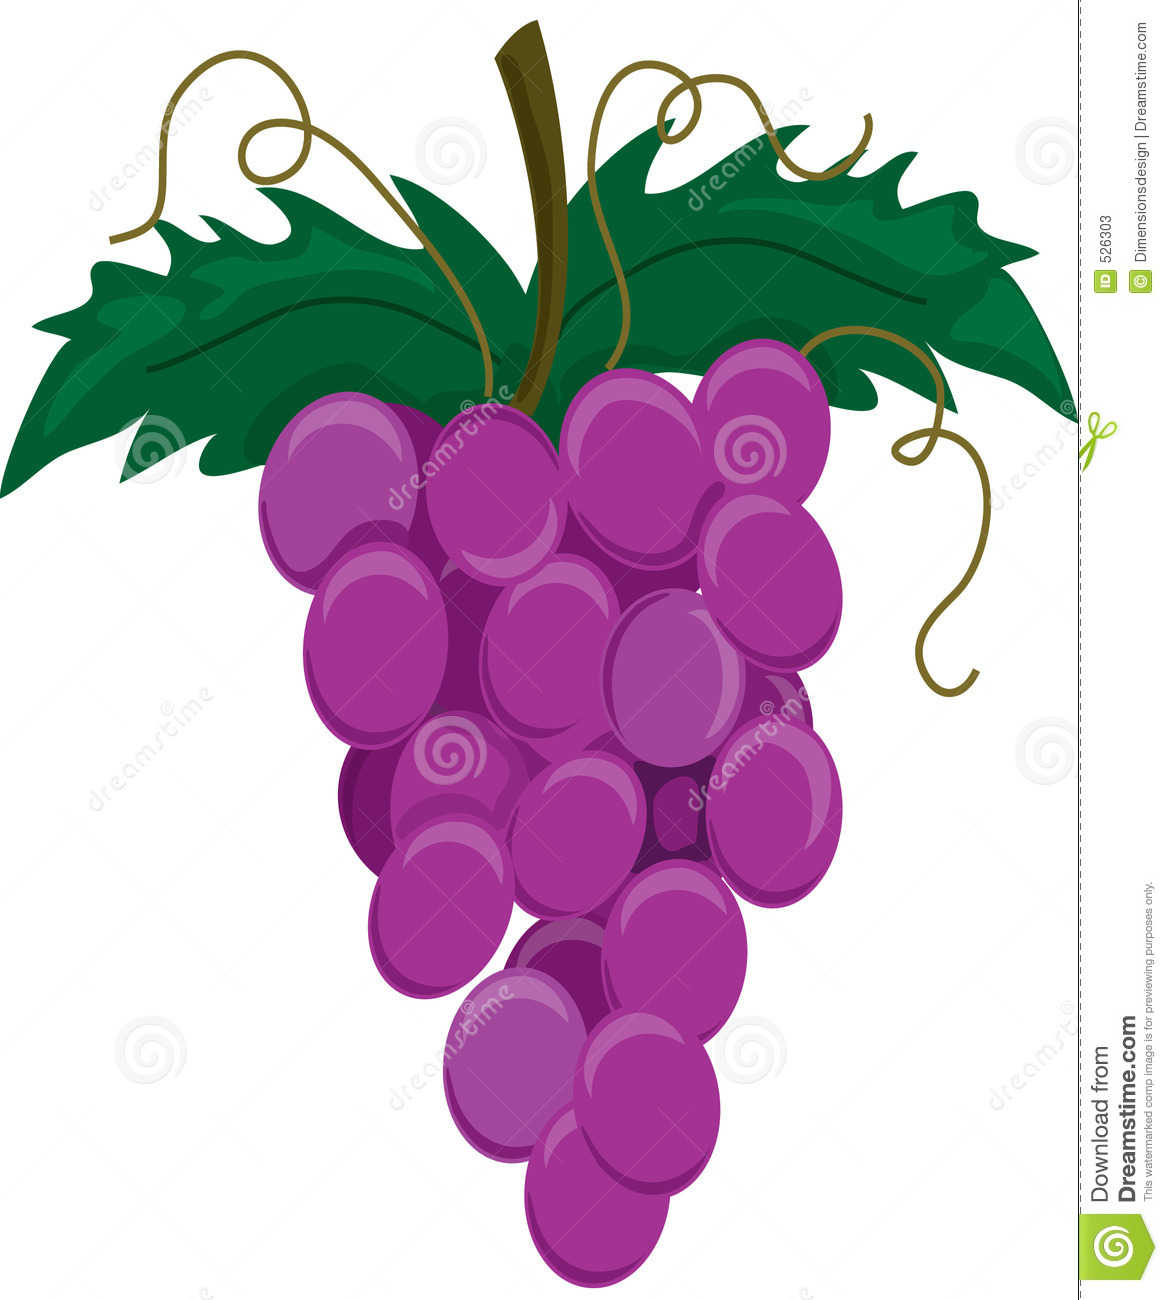 Einseitswendige grape clipart - Clipground for Grapes Animated  49jwn